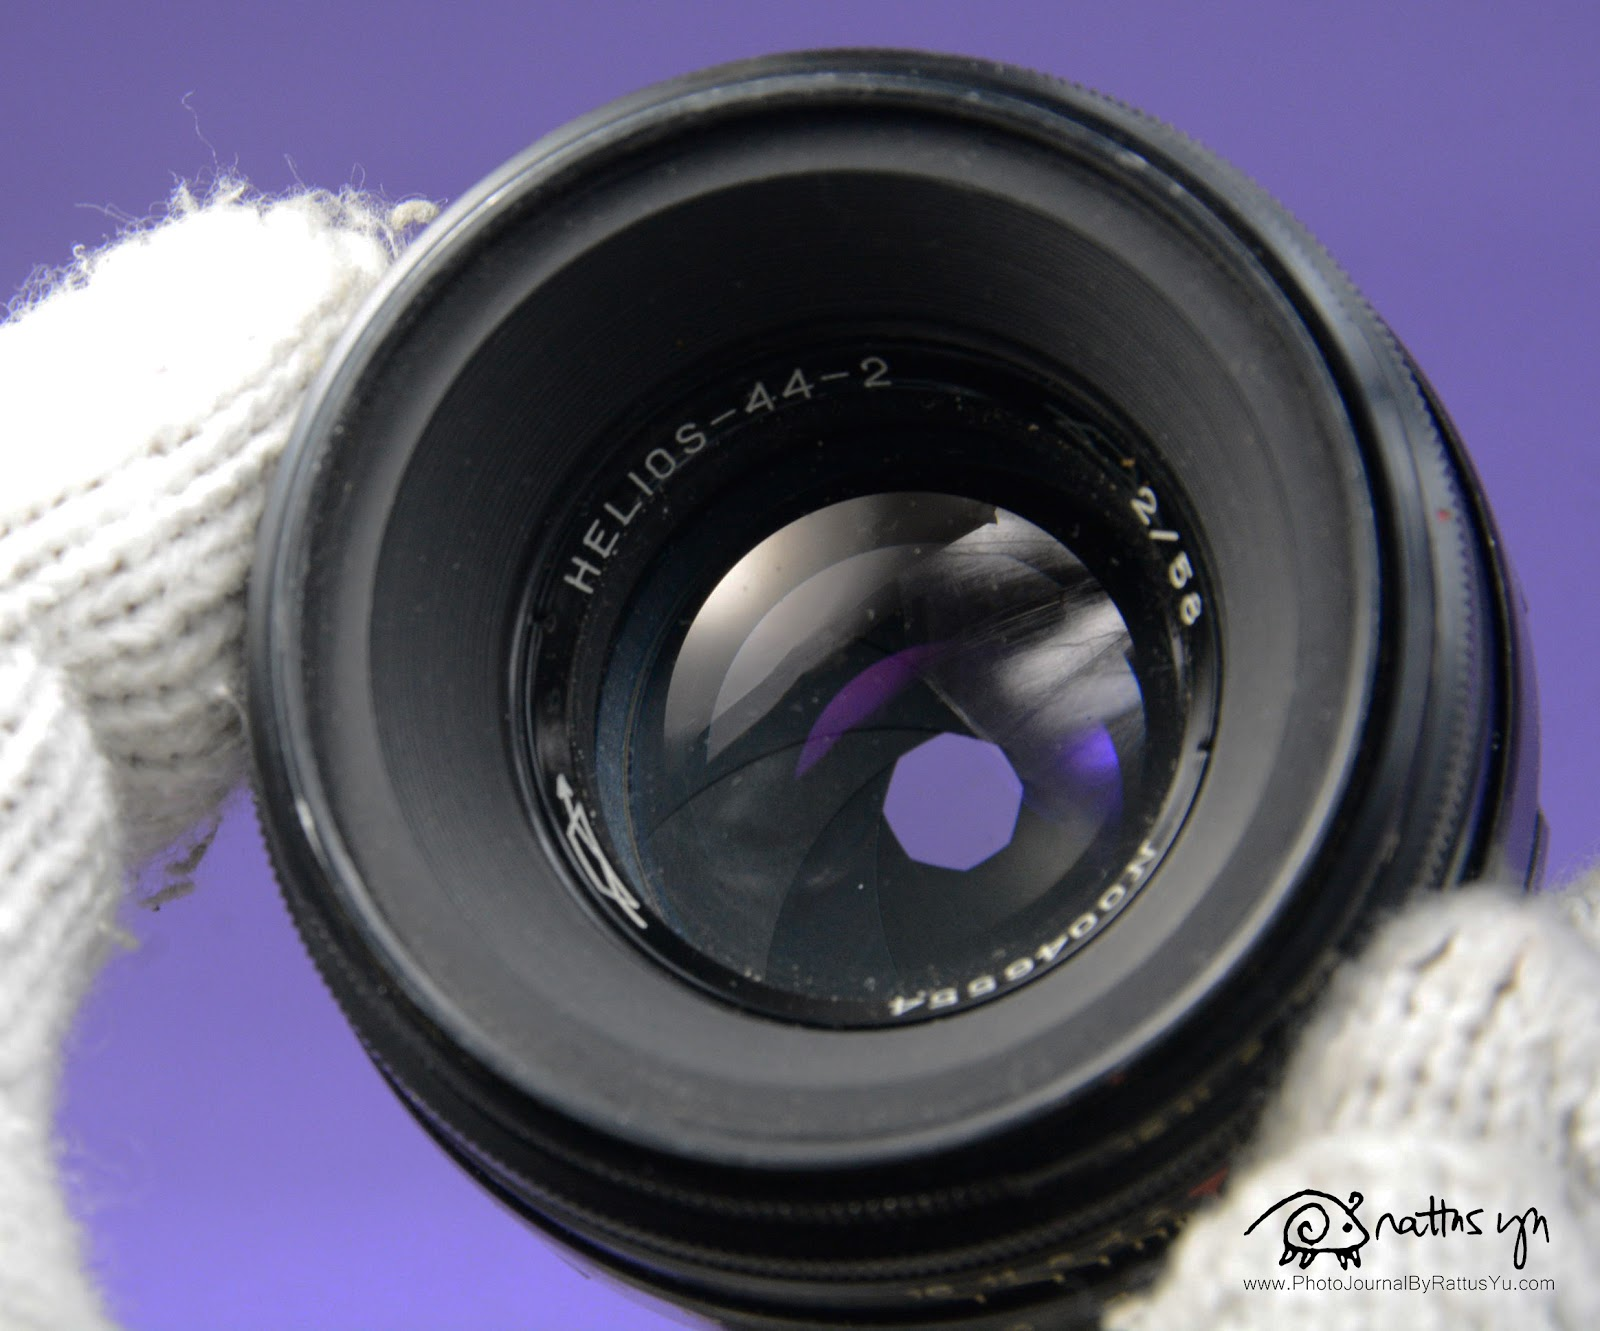 Helios 44-2 58mm f/2, M42 Mount Lens With Swirly Bokeh